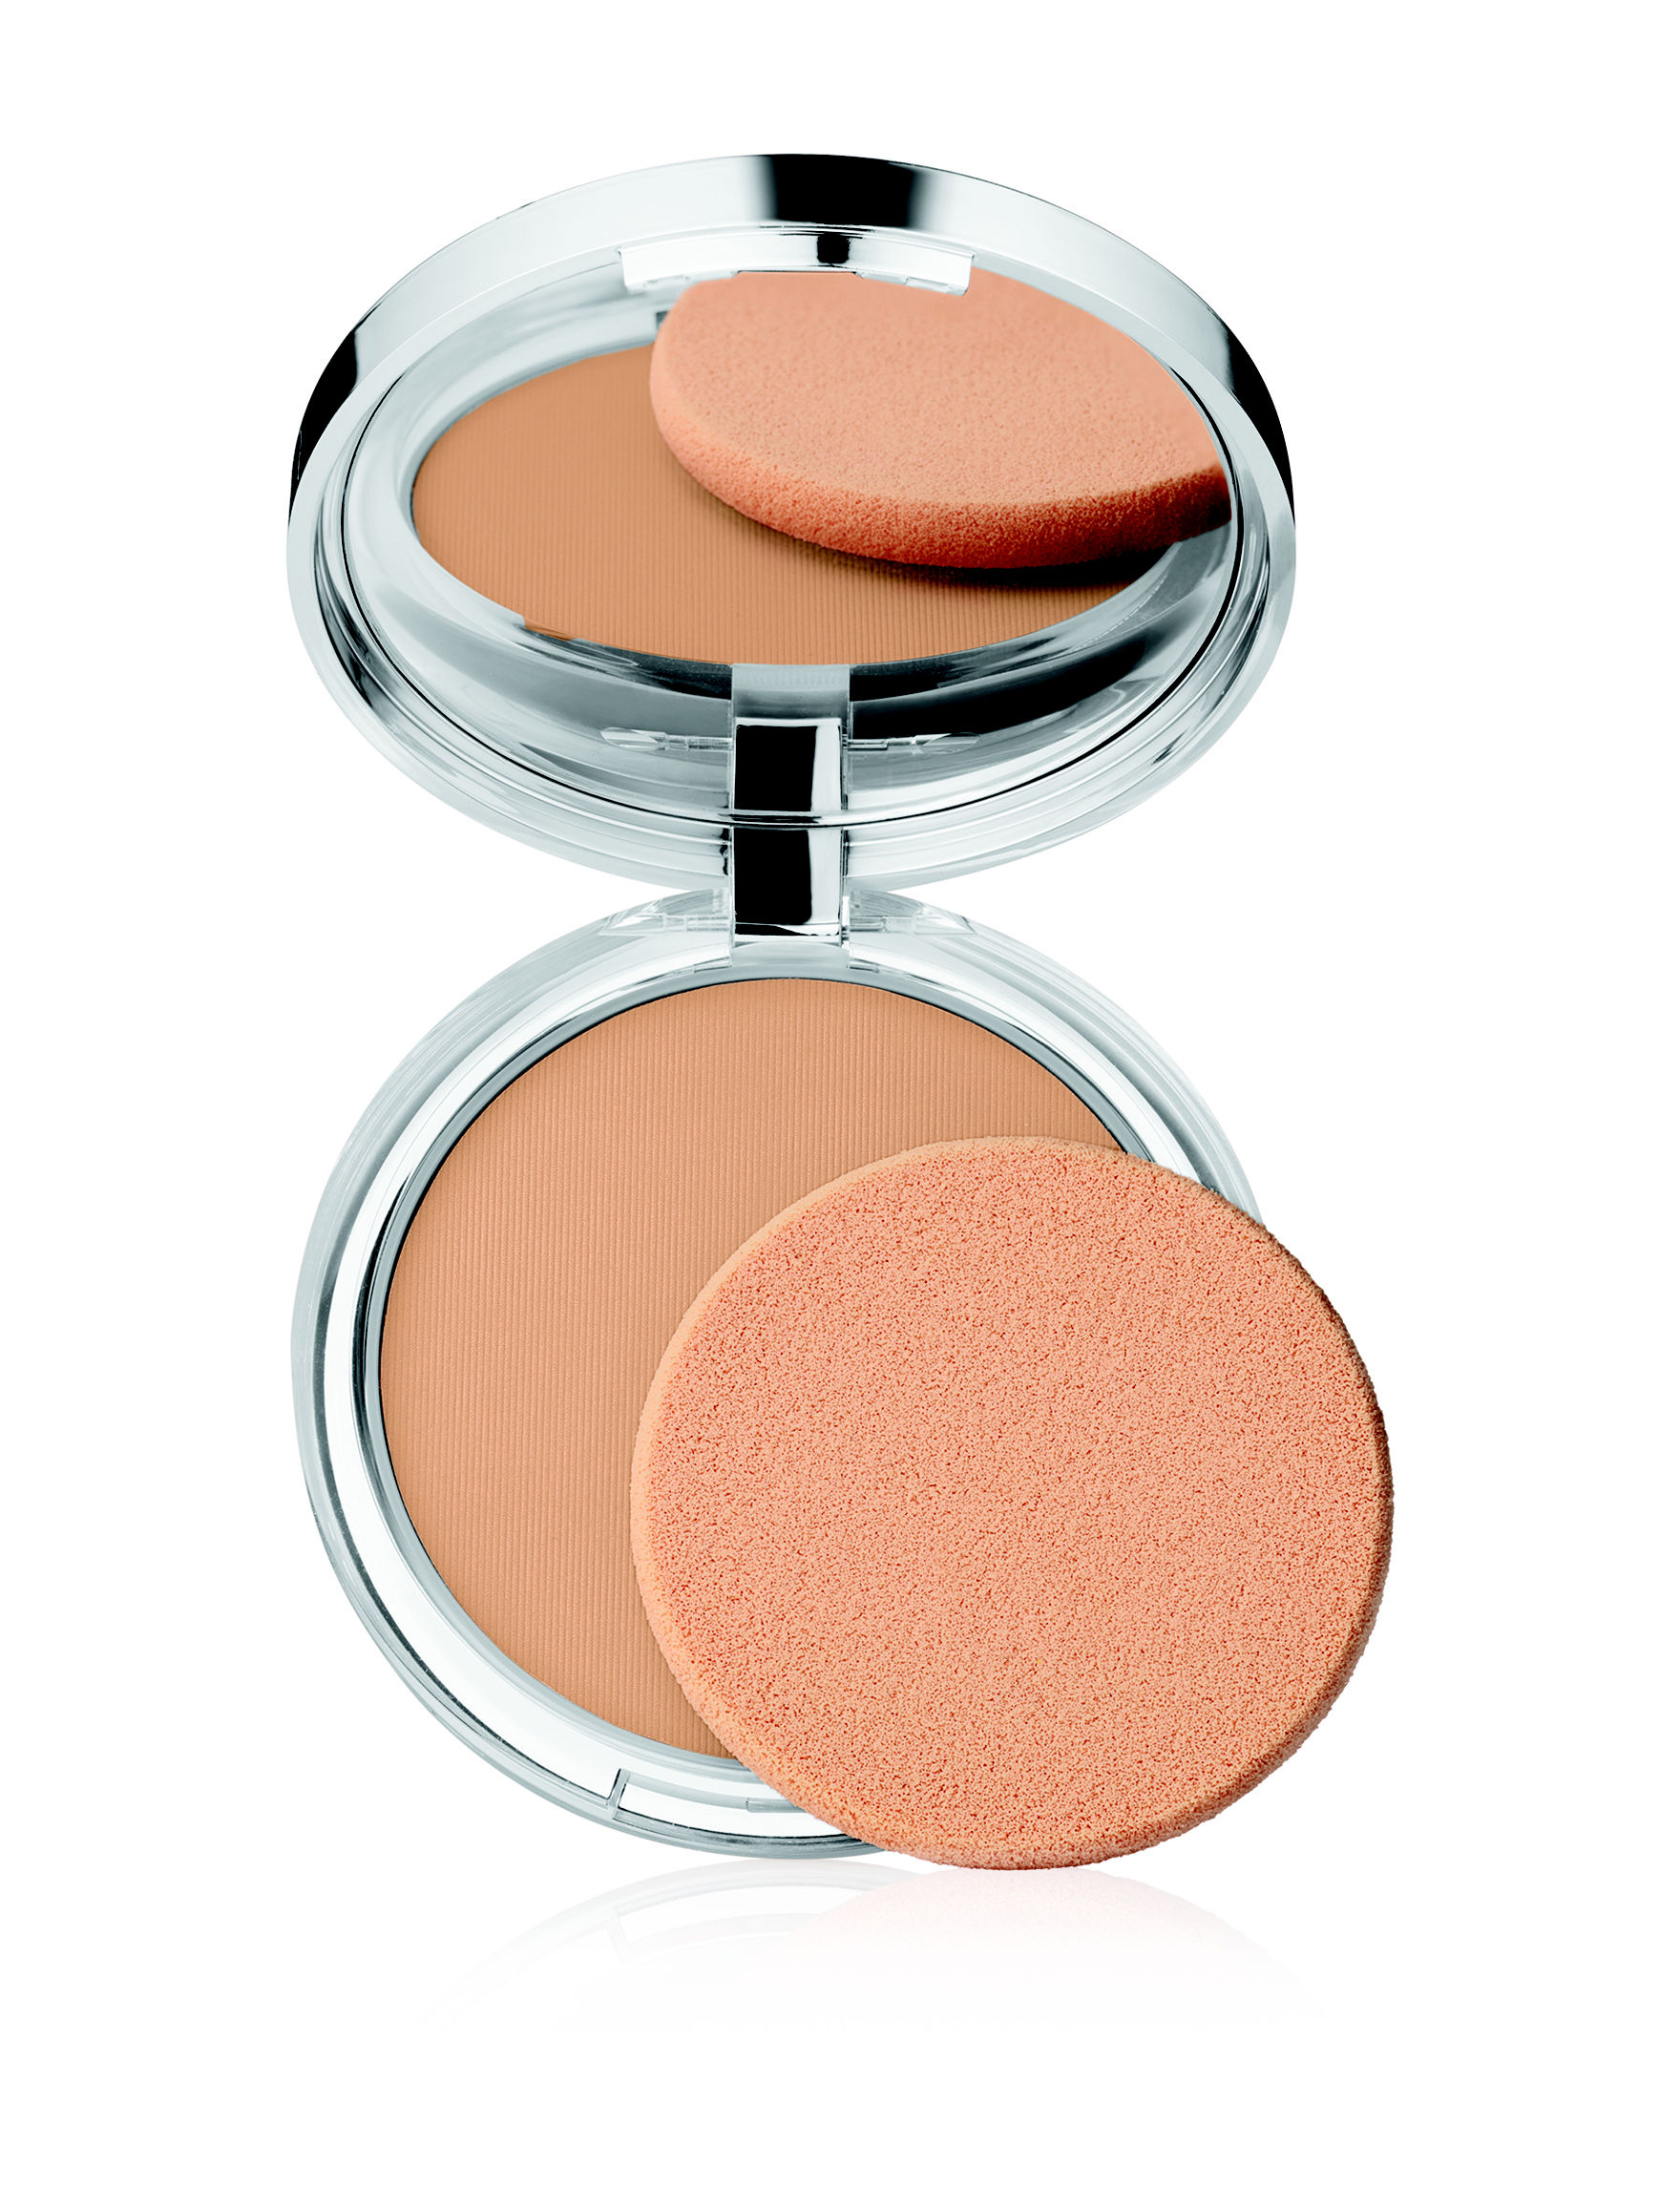 Clinique Stay-Matte Sheer Pressed Powder - Stay Honey - Clinique